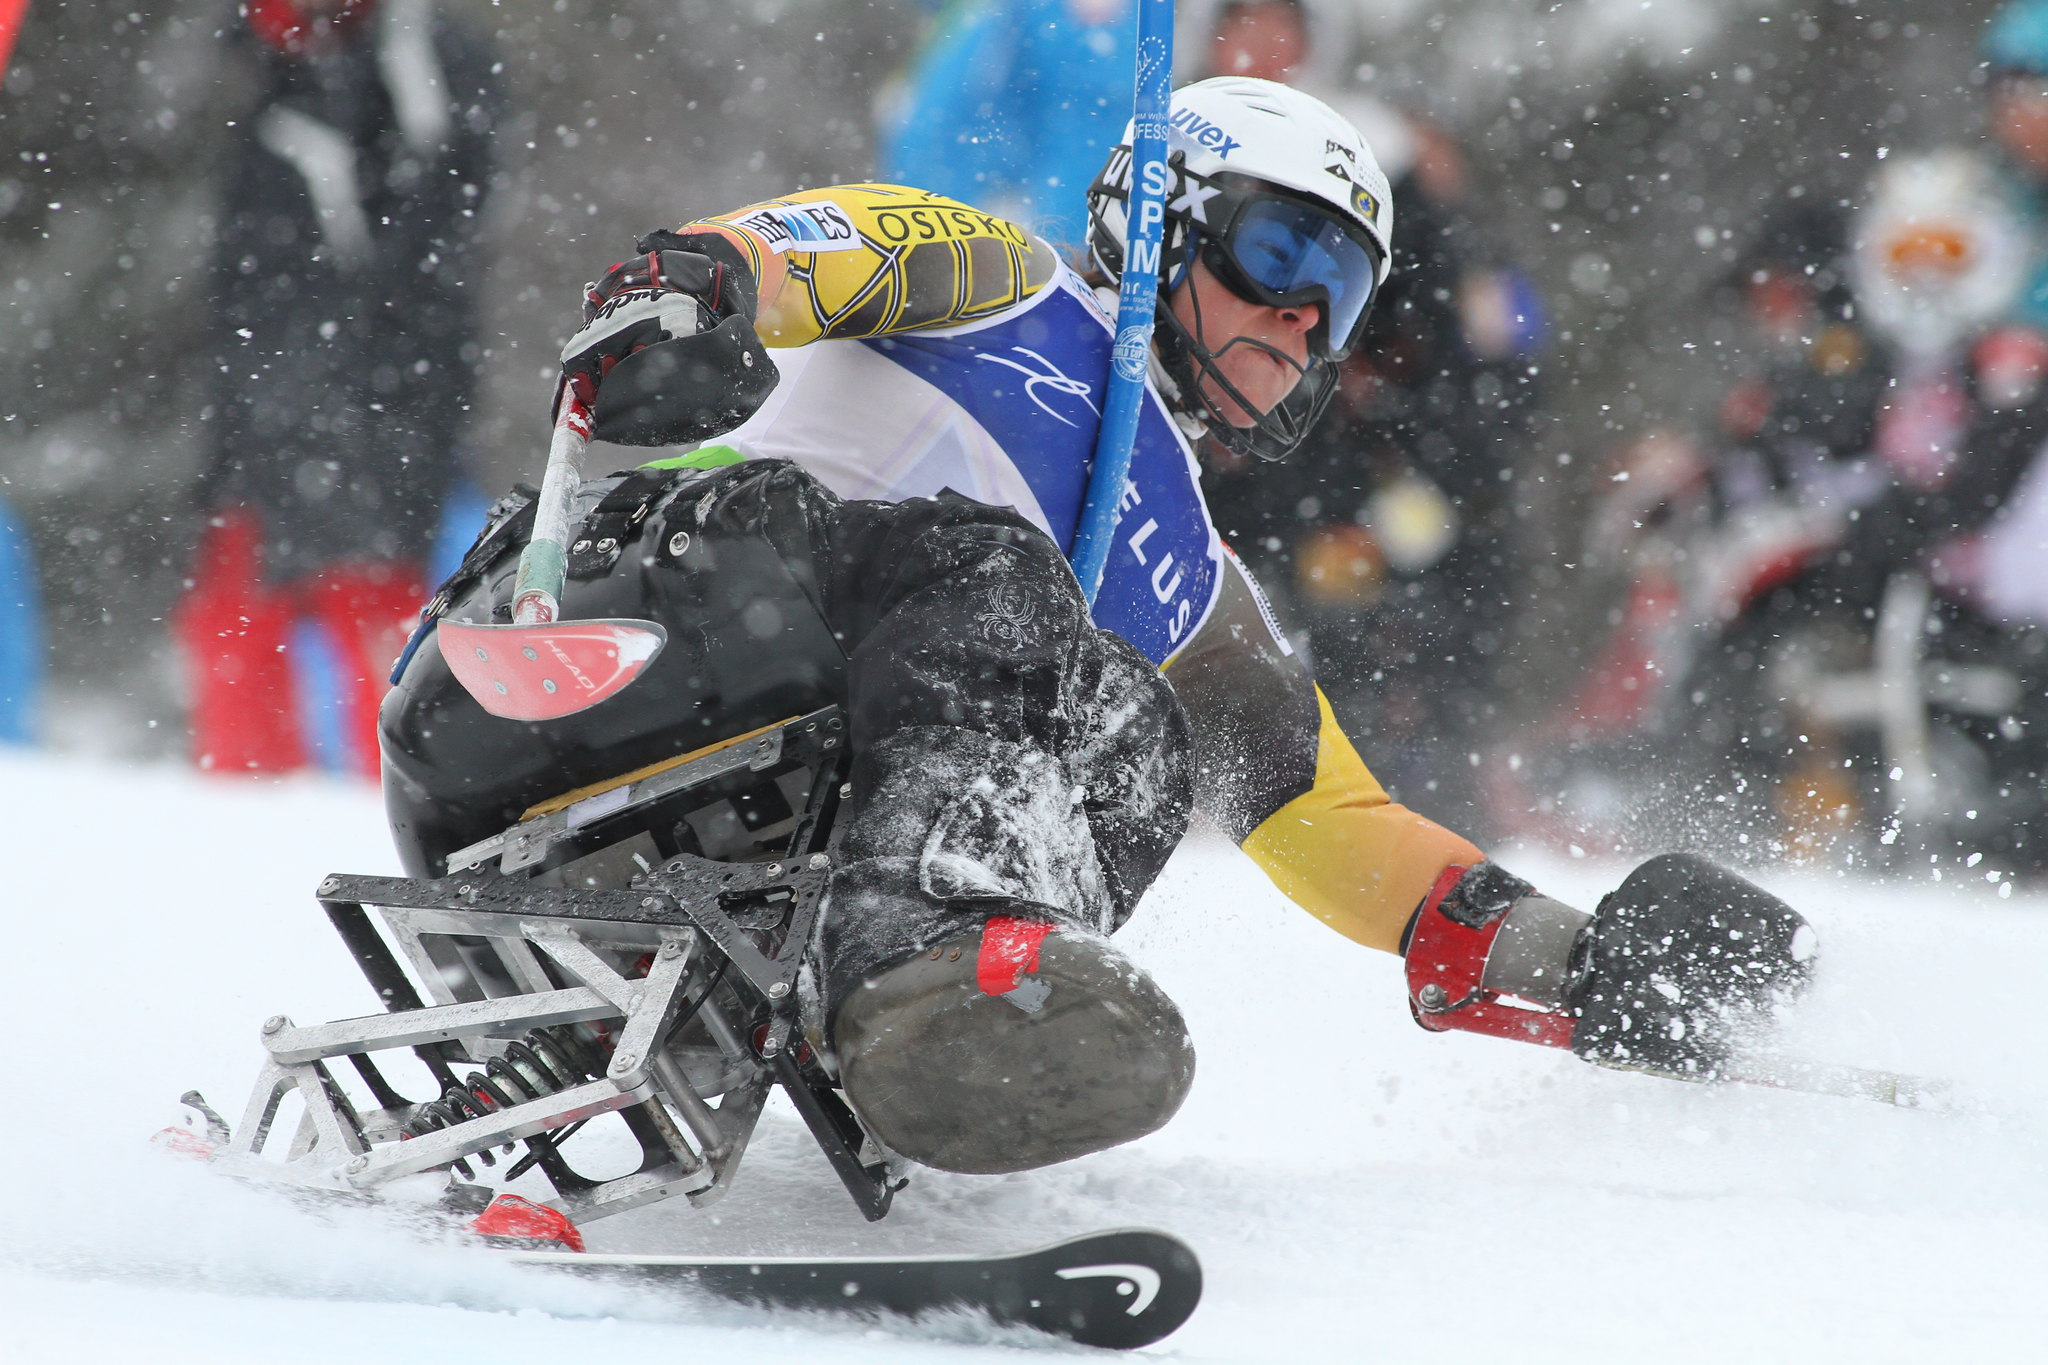 Kimberly Joines on her way to a gold medal in the slalom portion of an IPC World Cup super combined in Panorama, B.C.